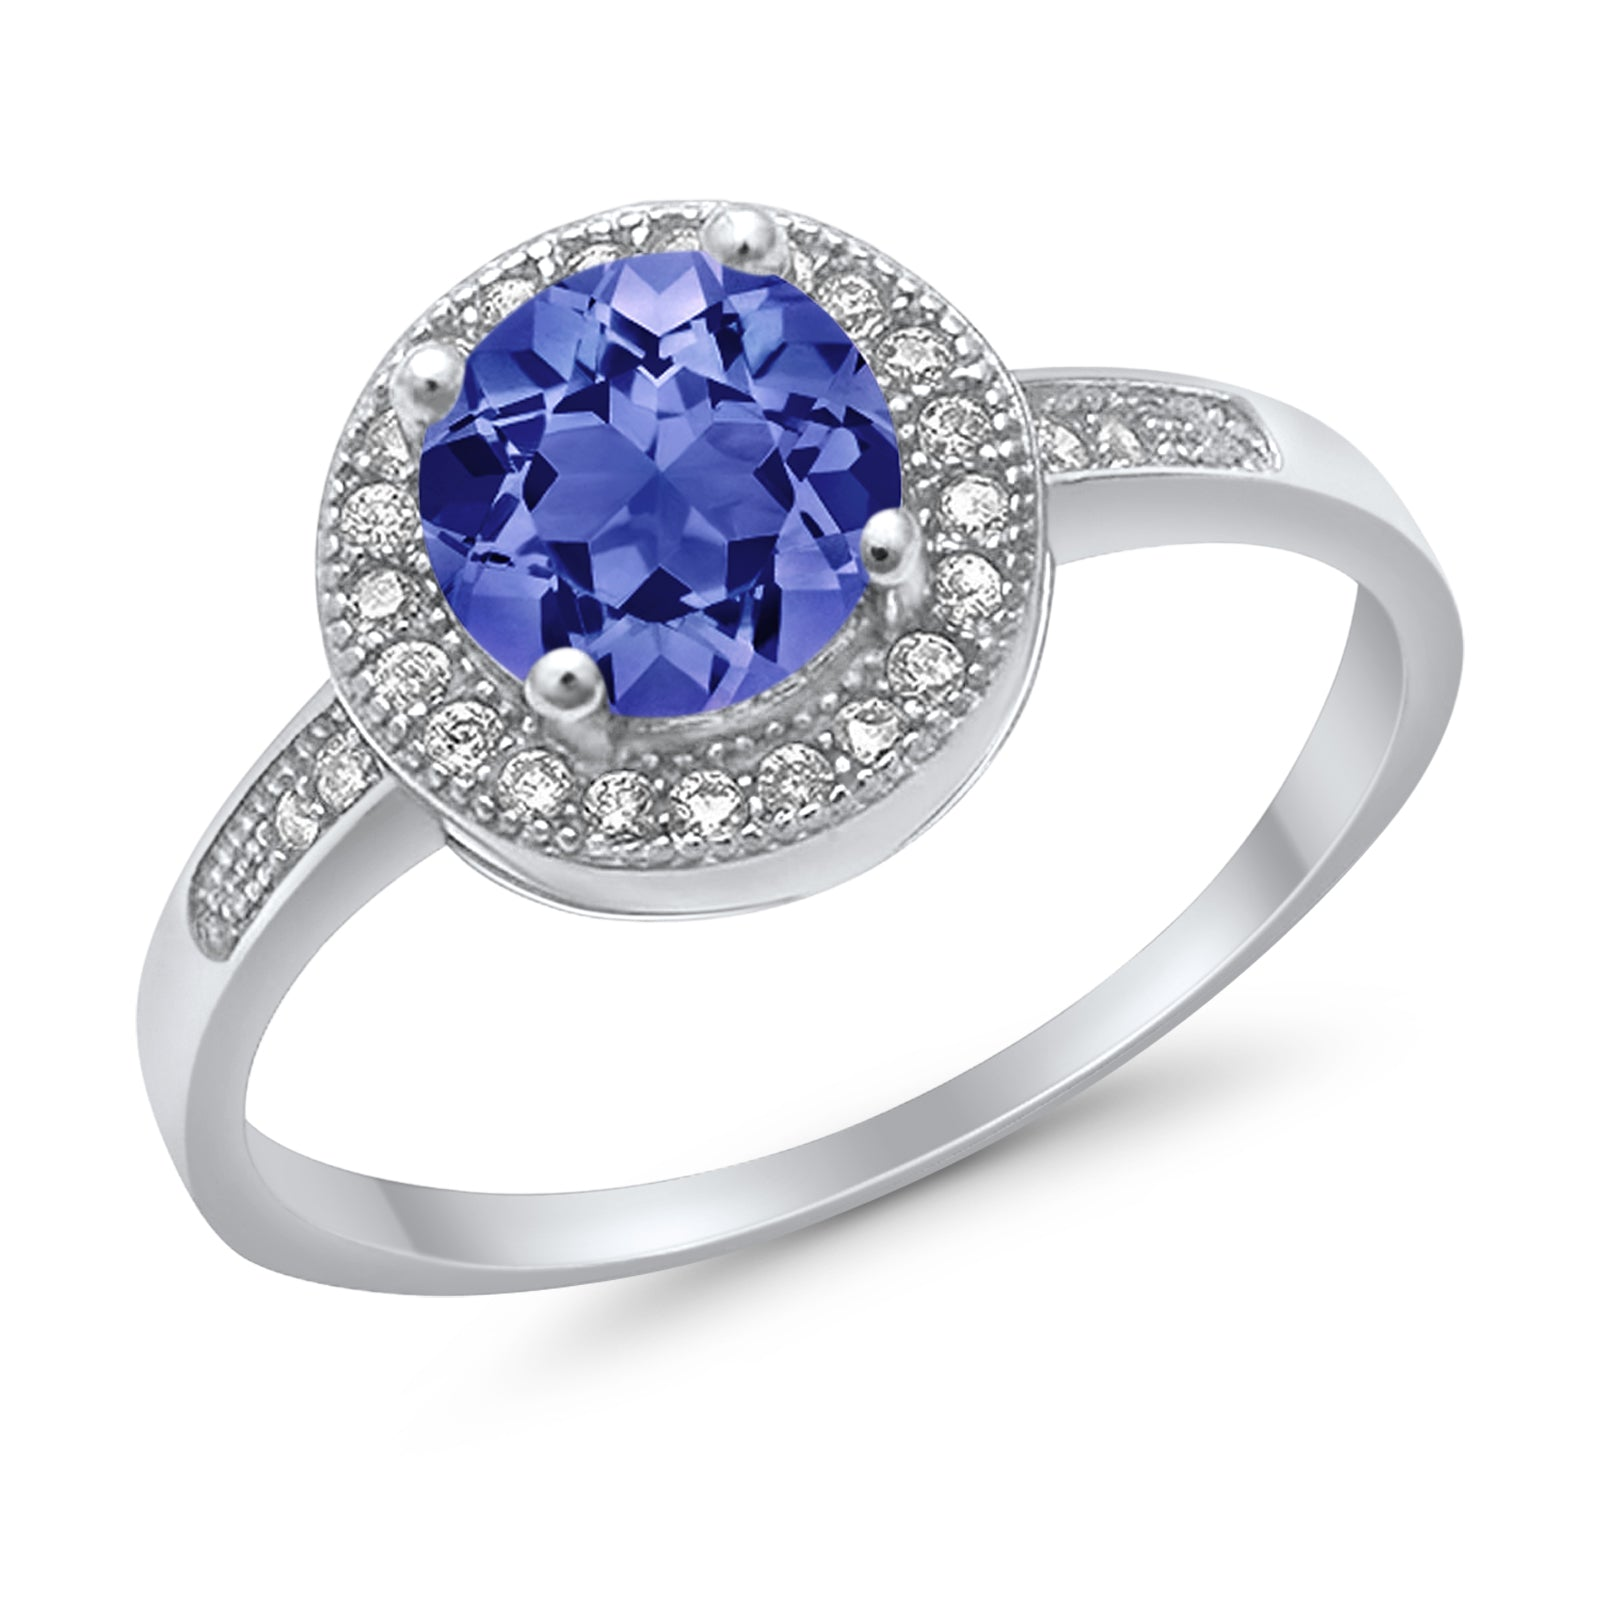 Halo Engagement Ring Round Simulated Tanzanite CZ 925 Sterling Silver